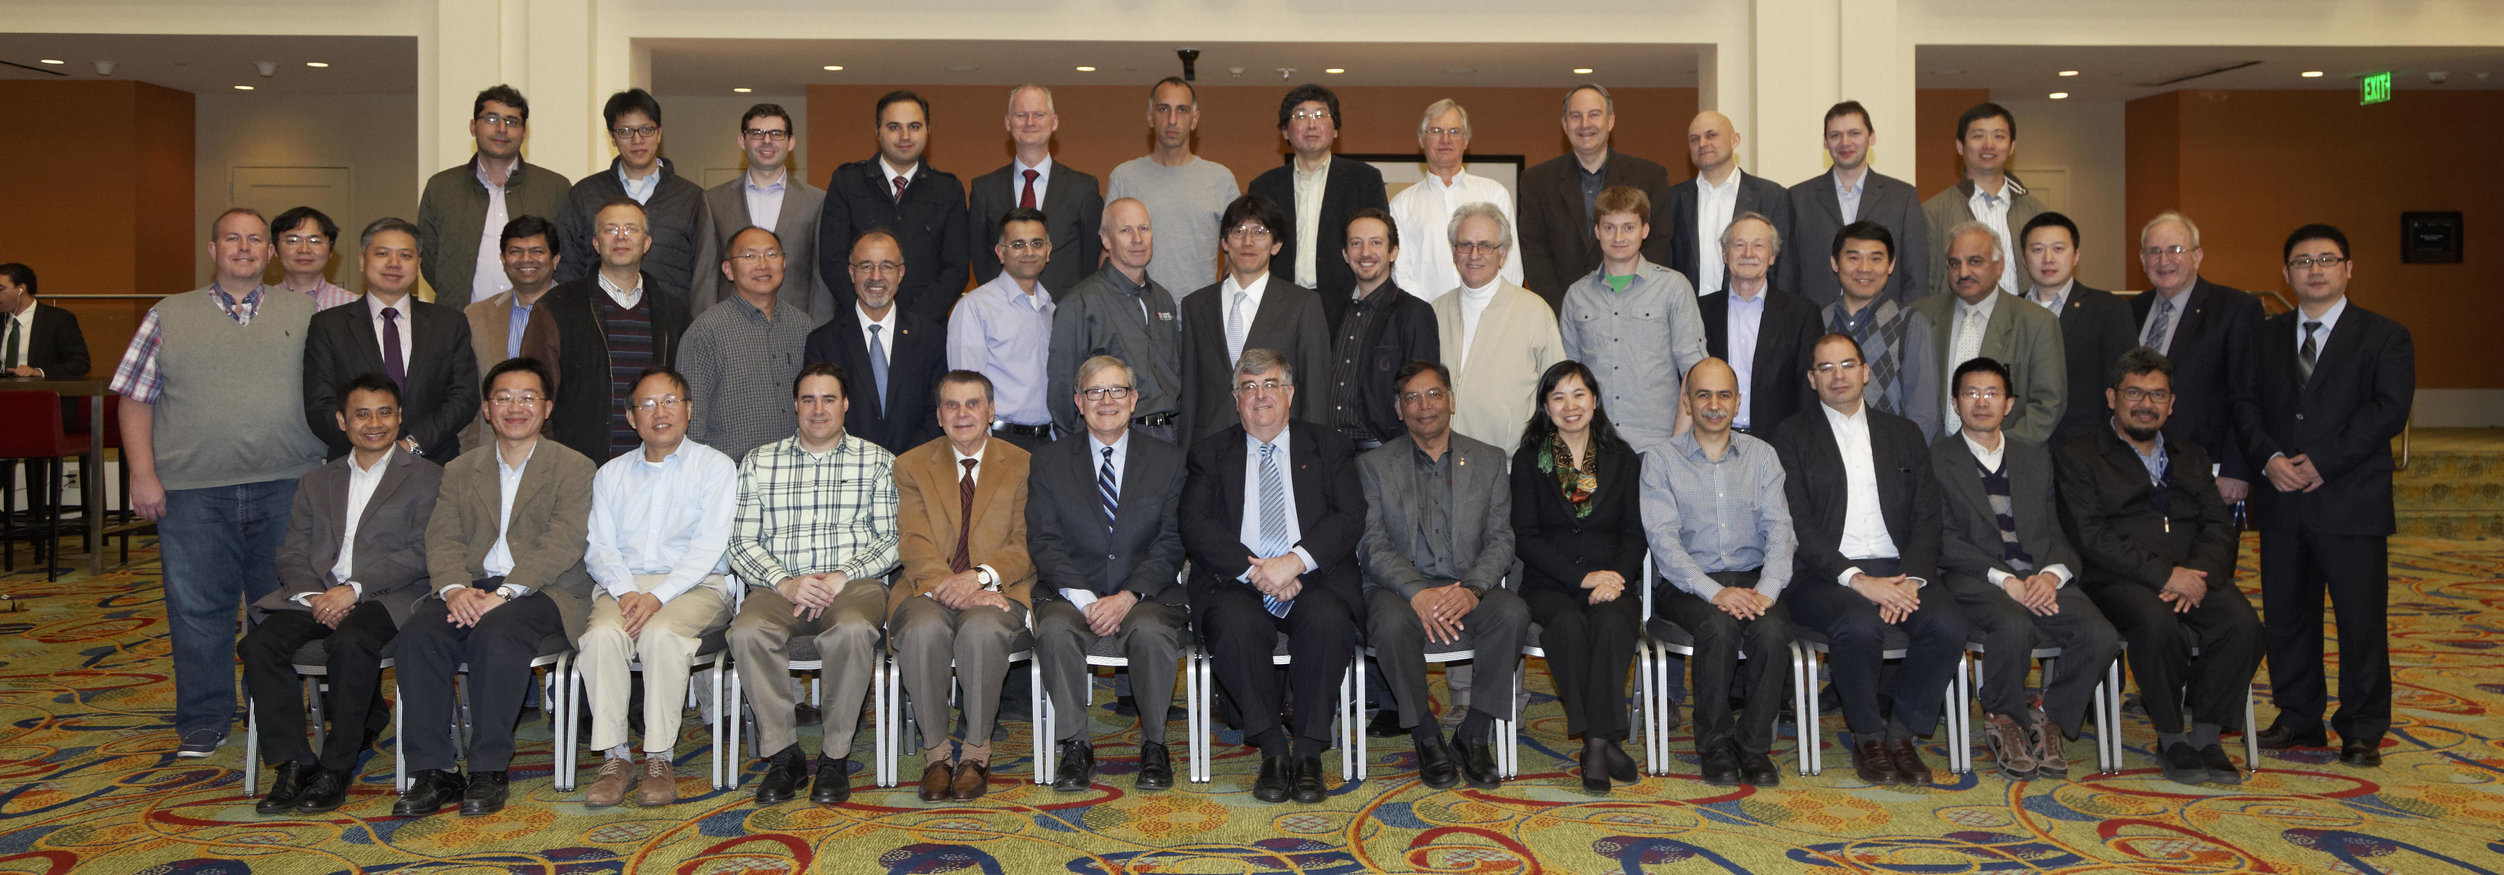 Chapter Representatives at the 2015 SSCS Chapter Chair Luncheon during ISSCC in February